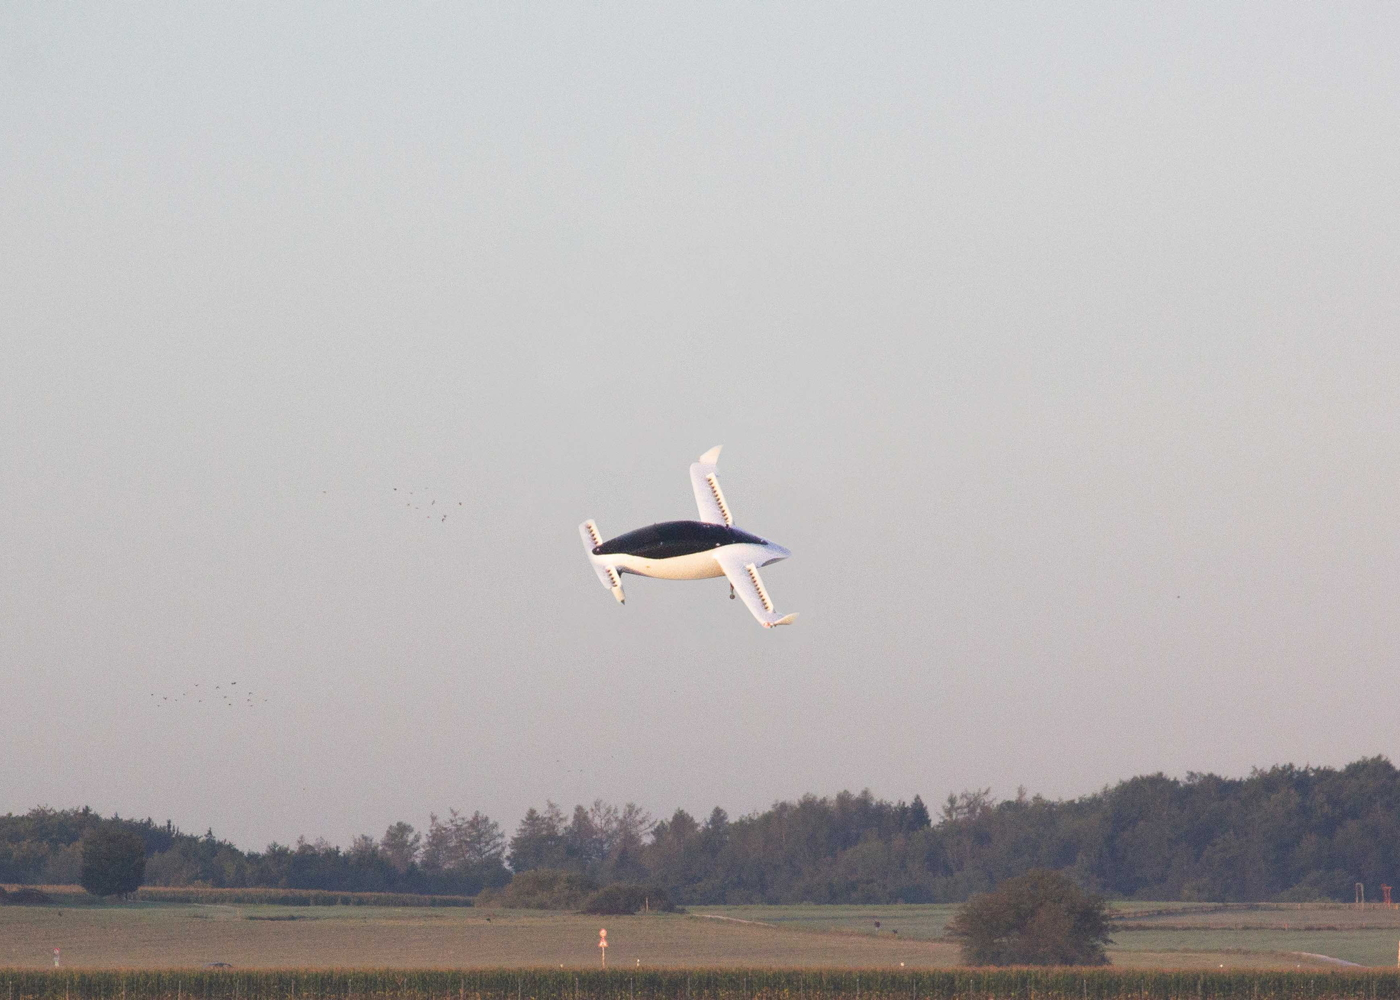 Lilium Jet flight test